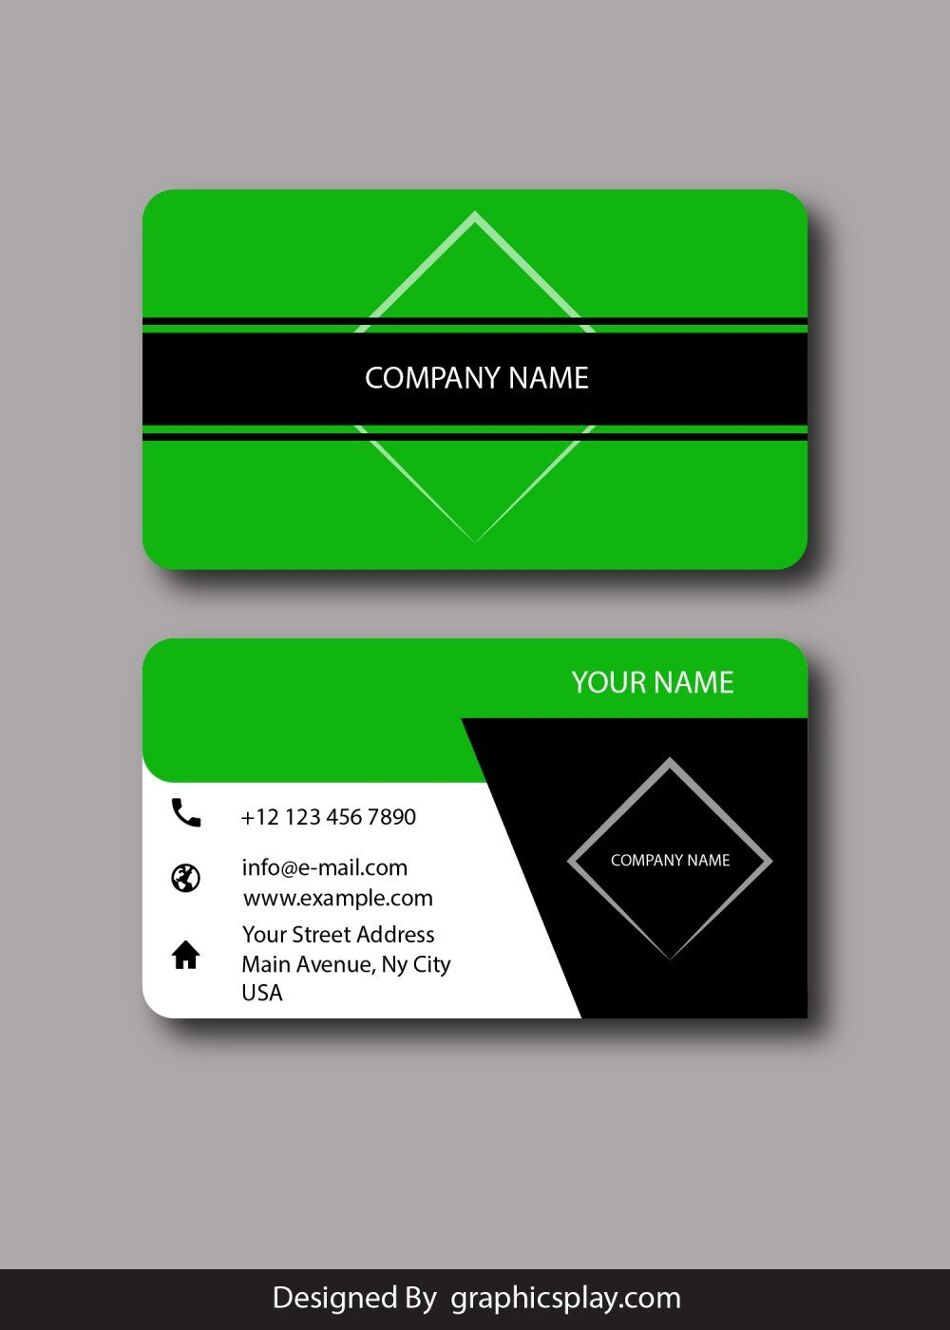 Business Card Design Vector Template - ID 1793 1